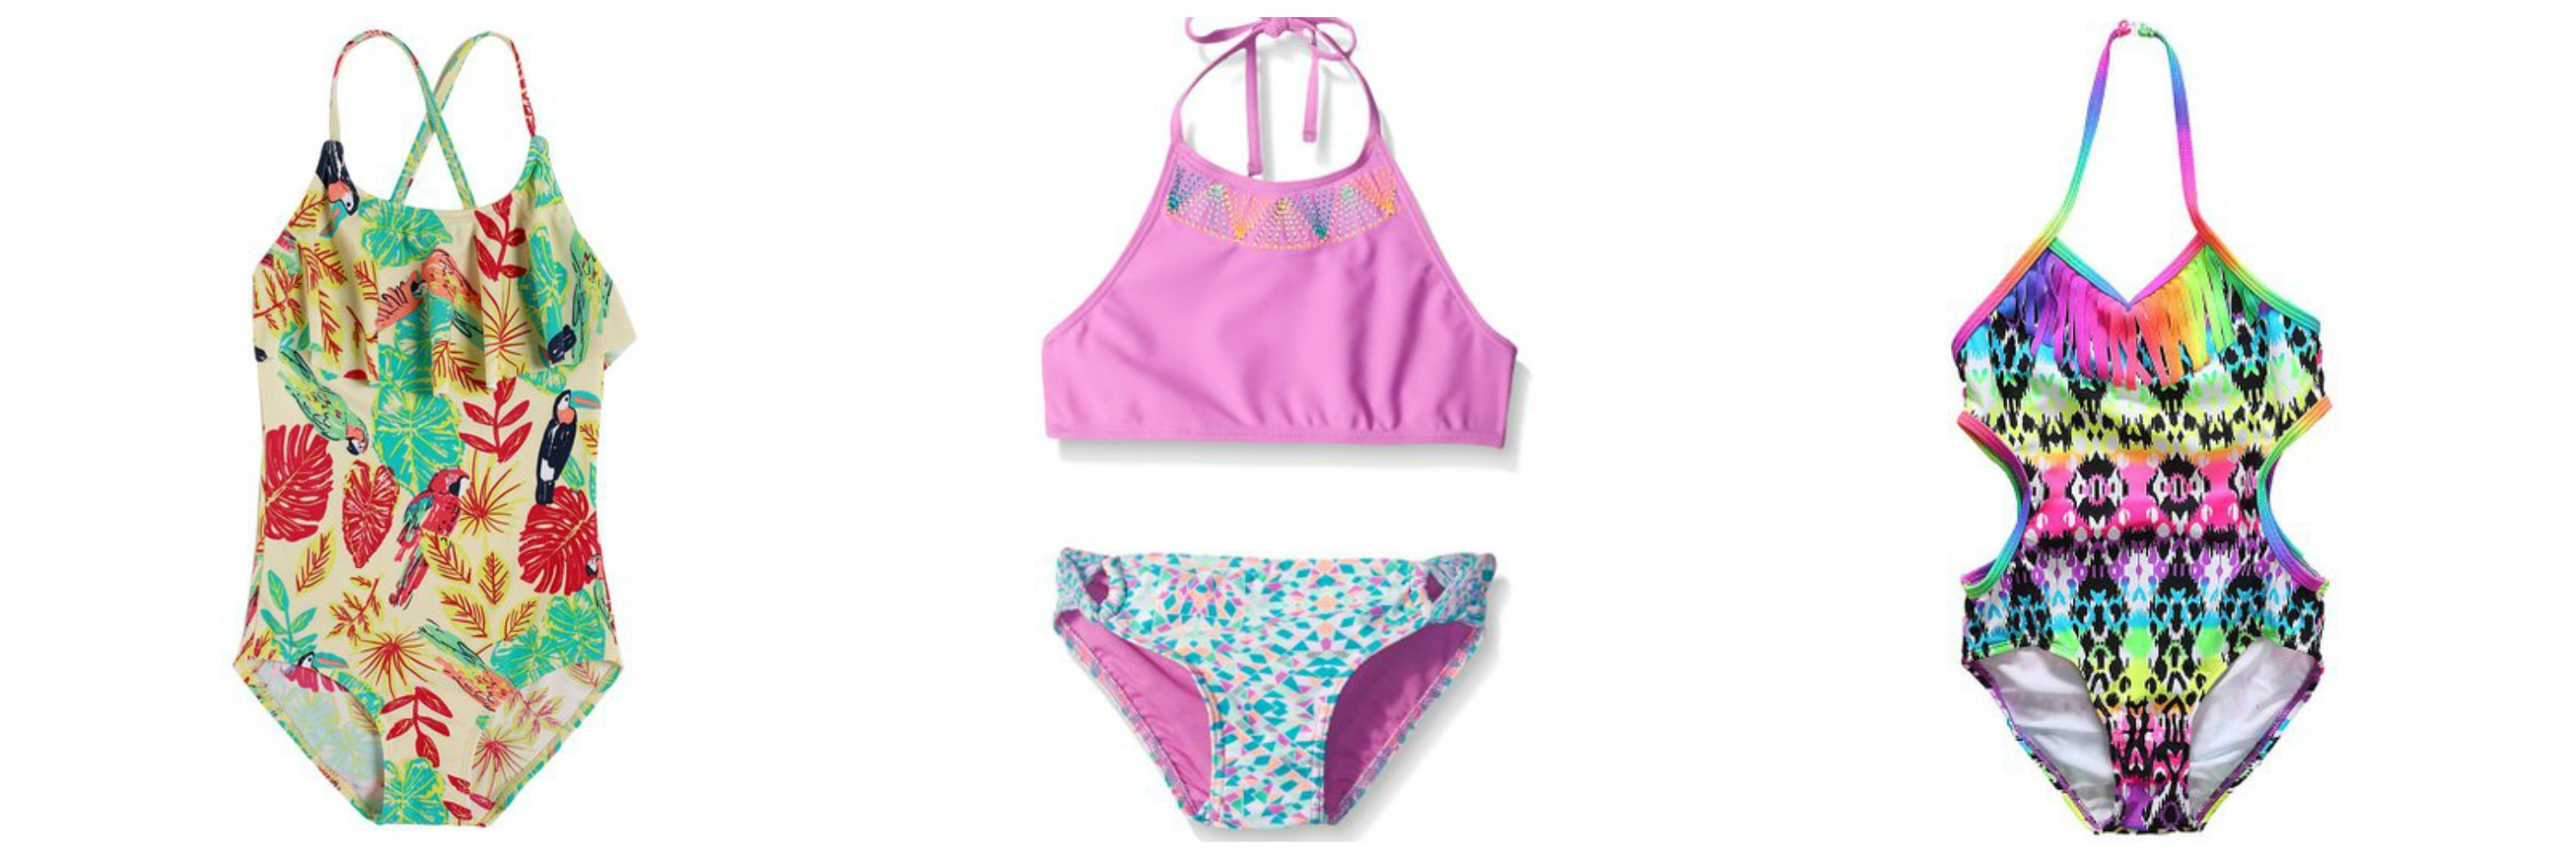 Arshiner Gossip Girl Attraco these are your days swimwear beach ready